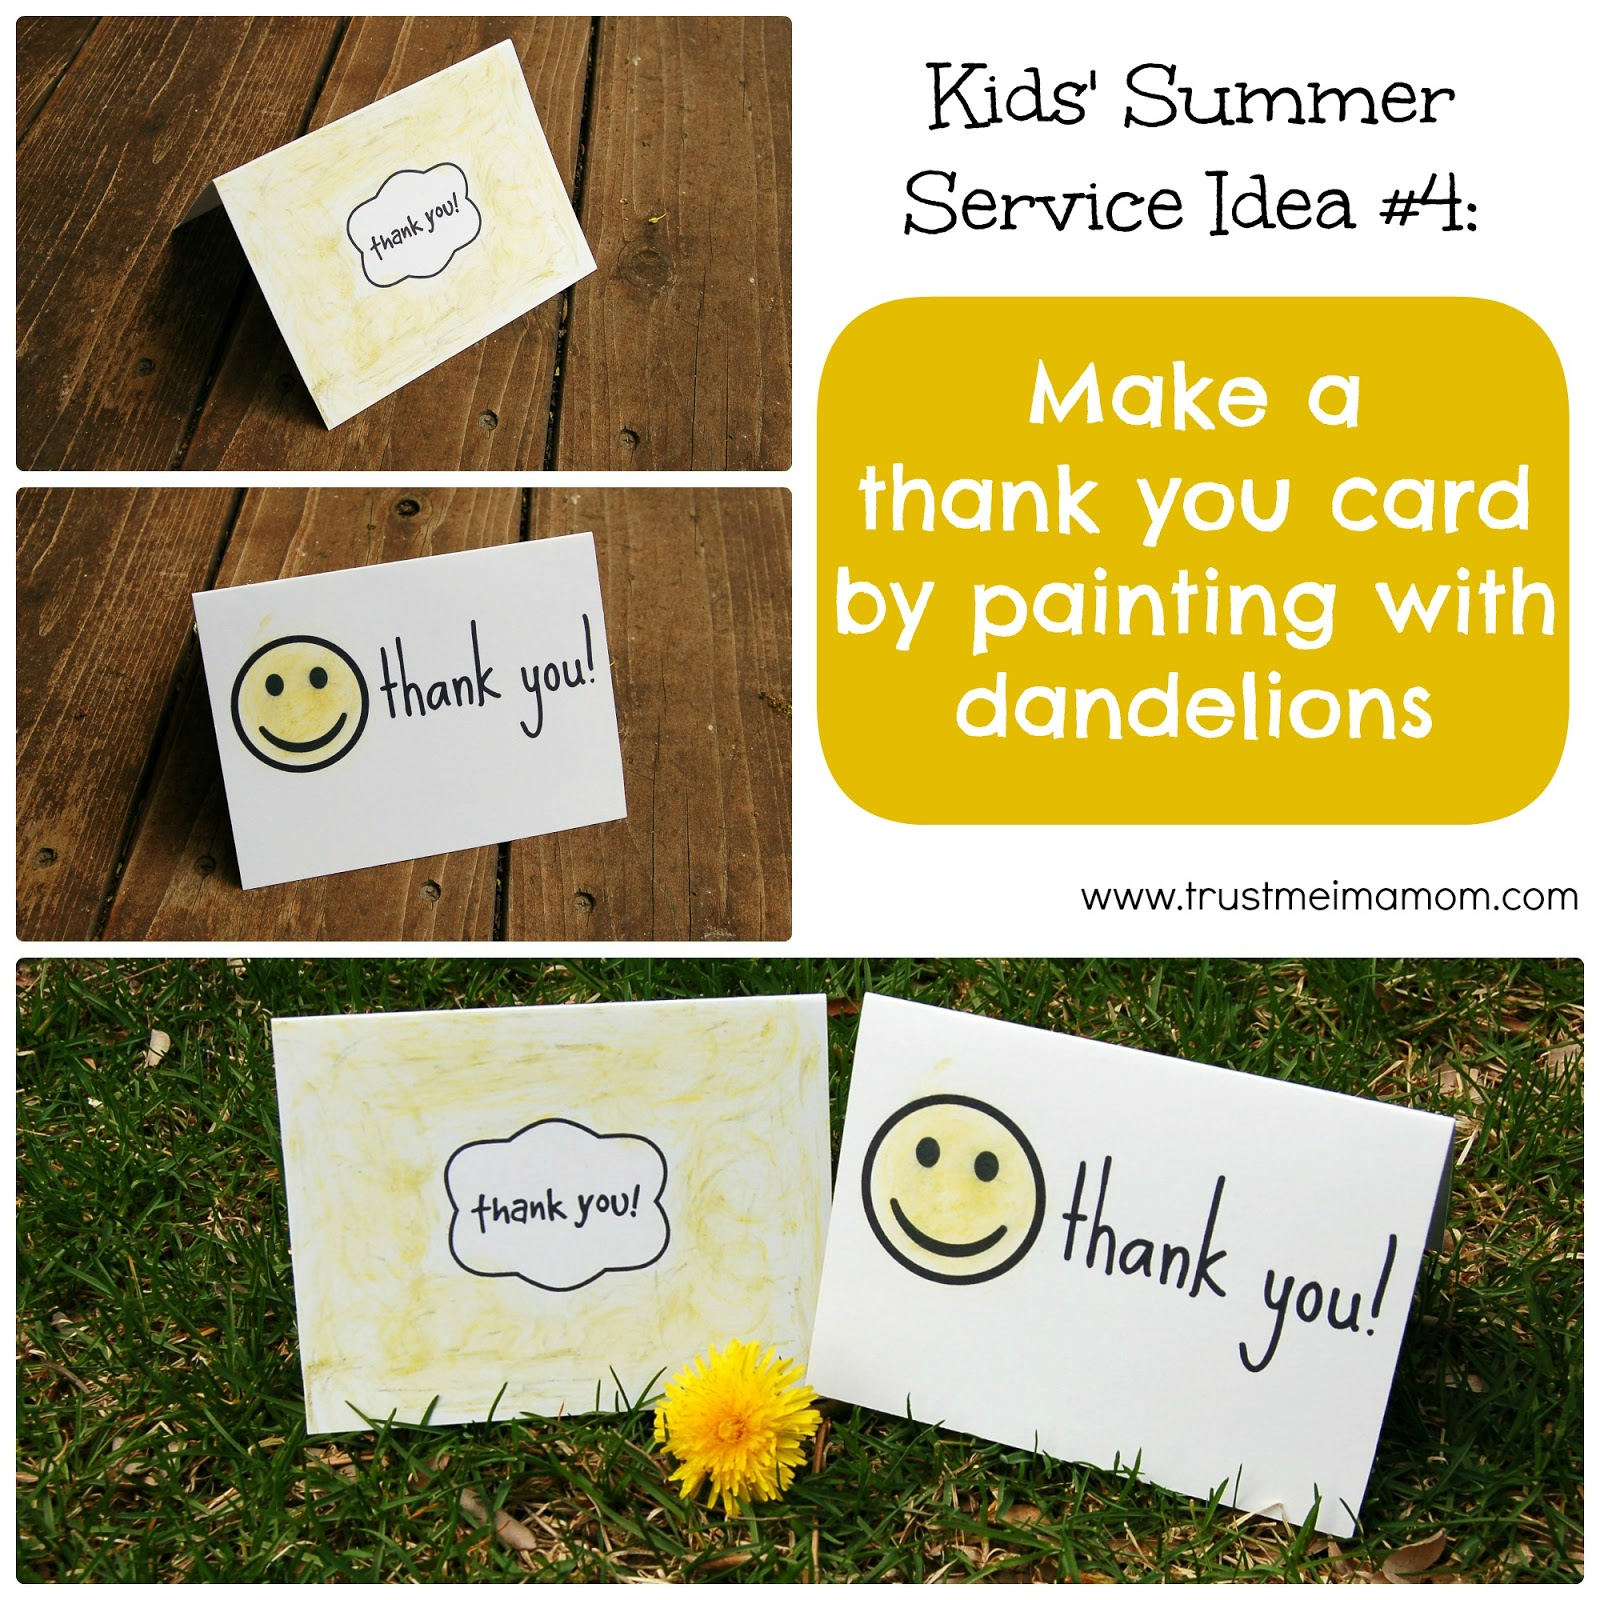 Fun Ways to Serve with Your Kids This Summer: Idea #4 - Make a card out of pressed flowers or painted with dandelions... cute & easy!